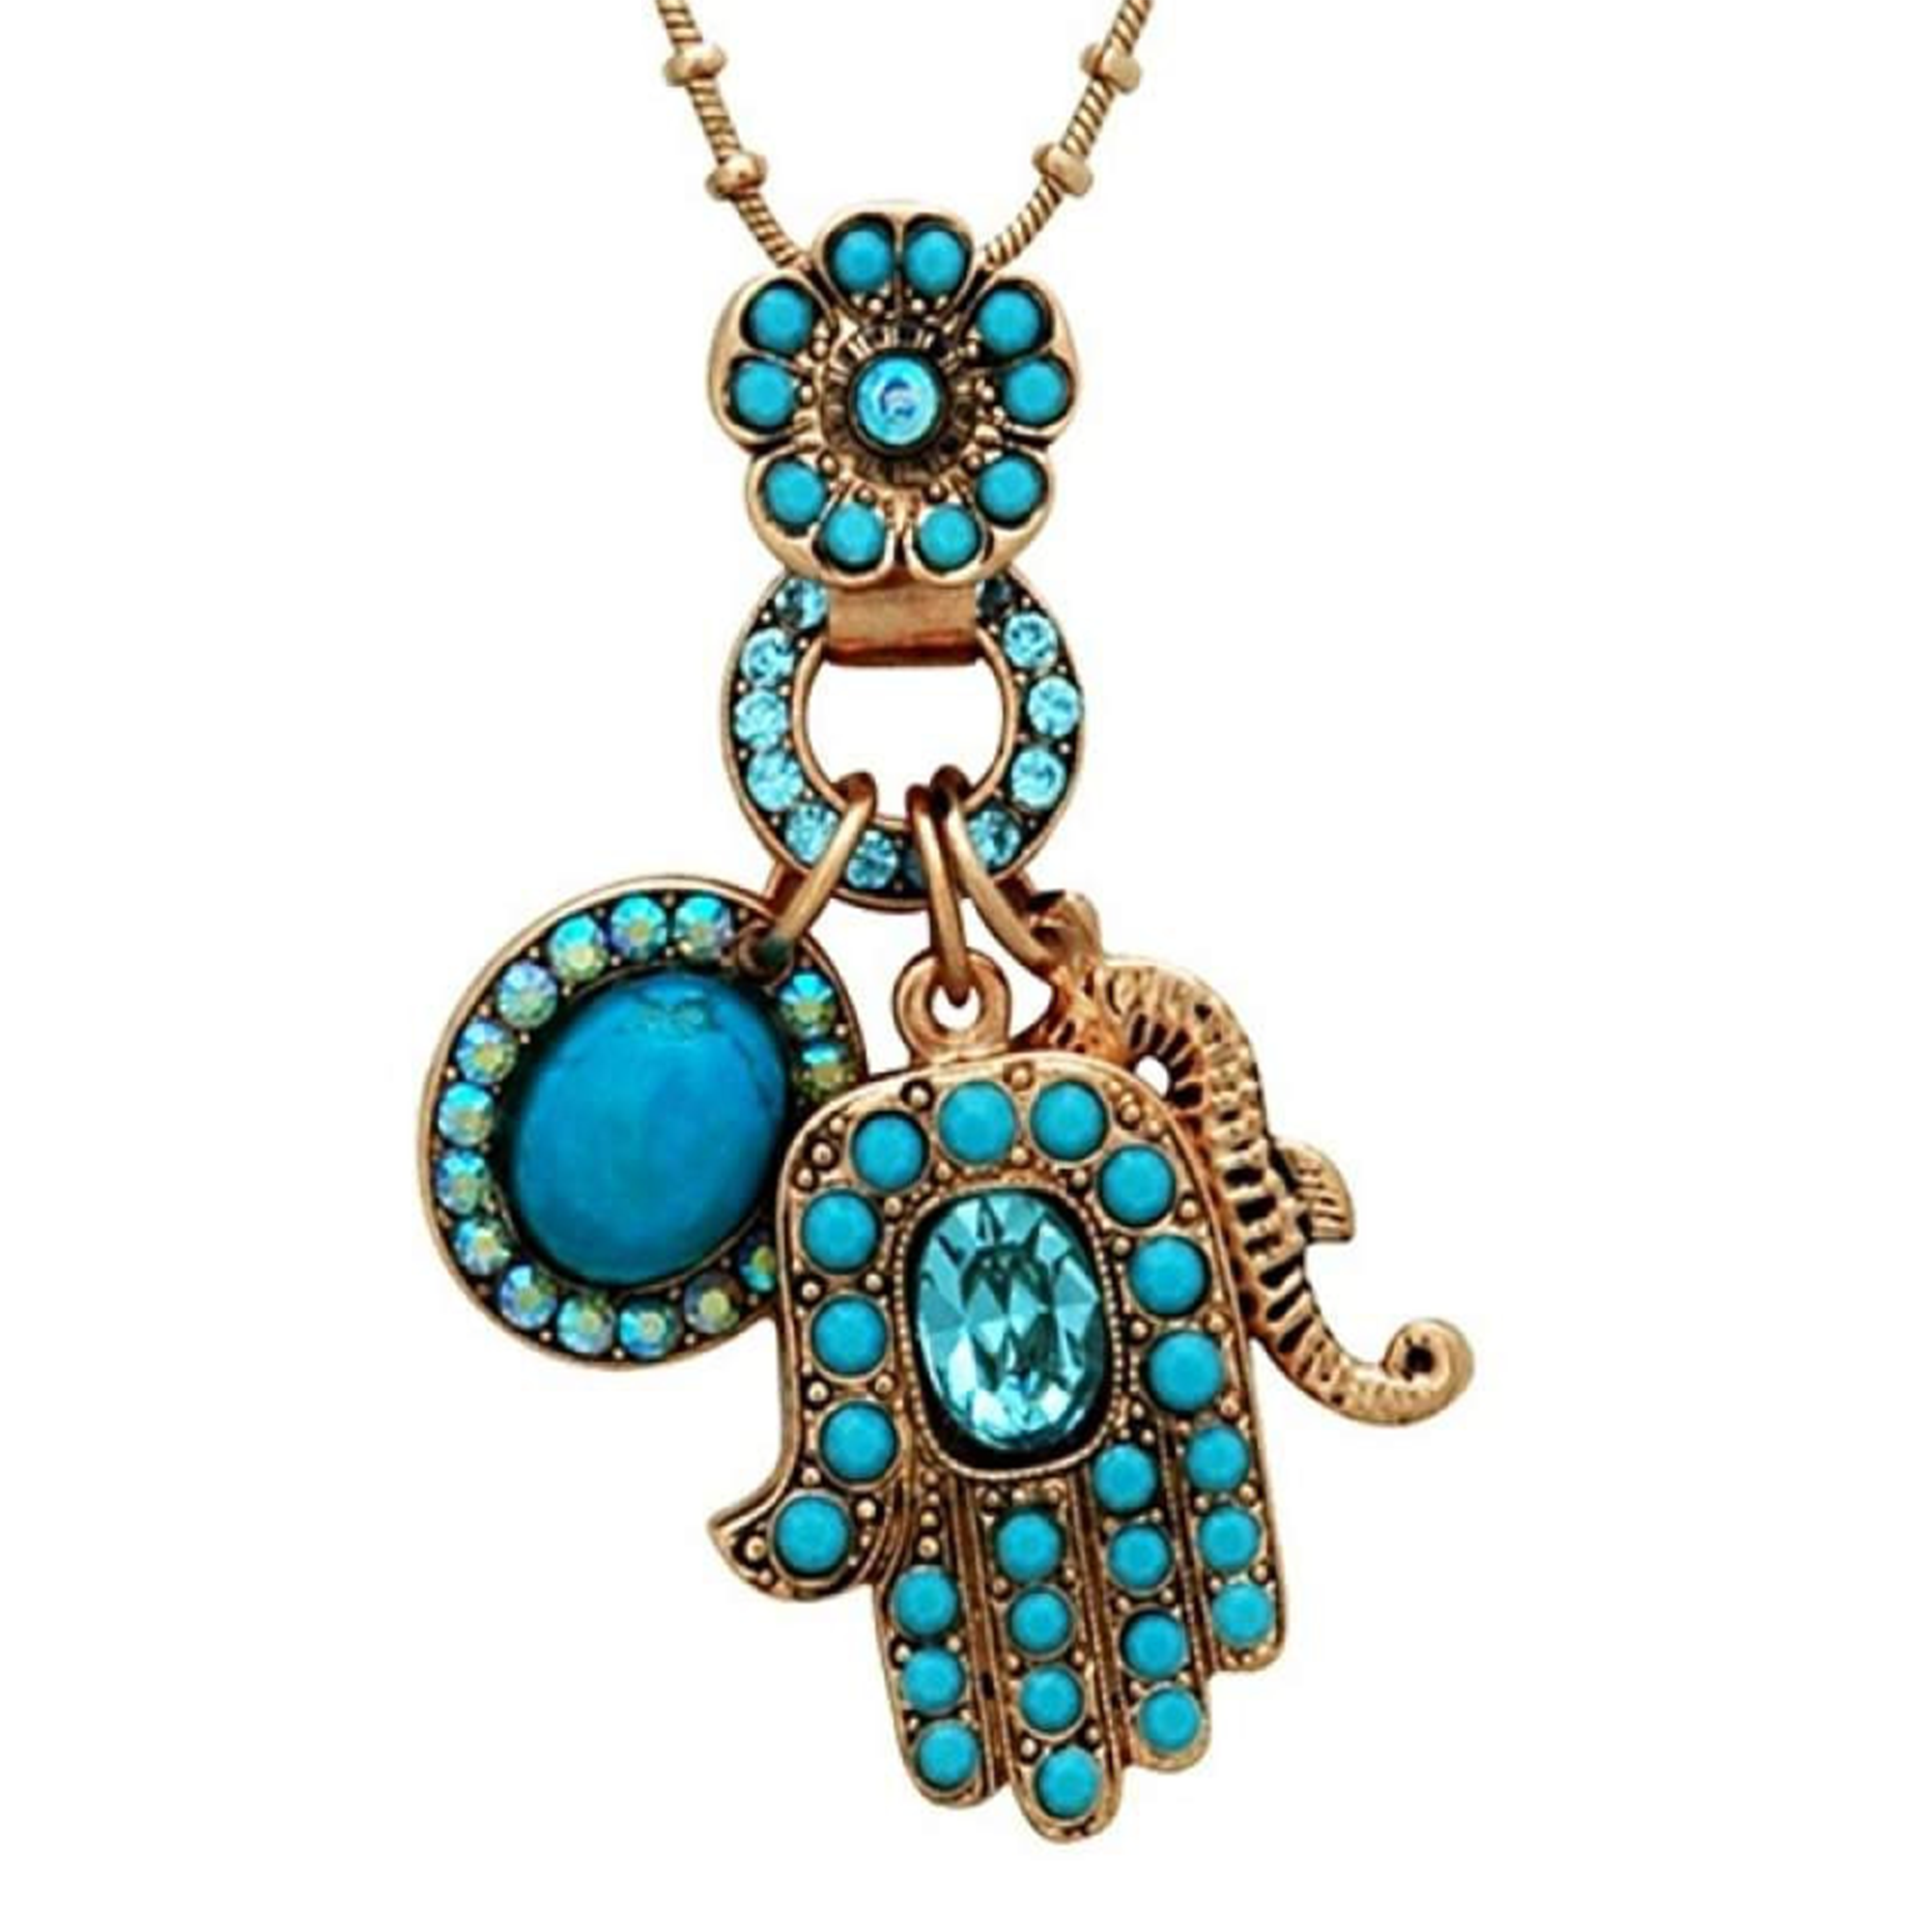 hamsa-necklace-irit-goffer-sasson